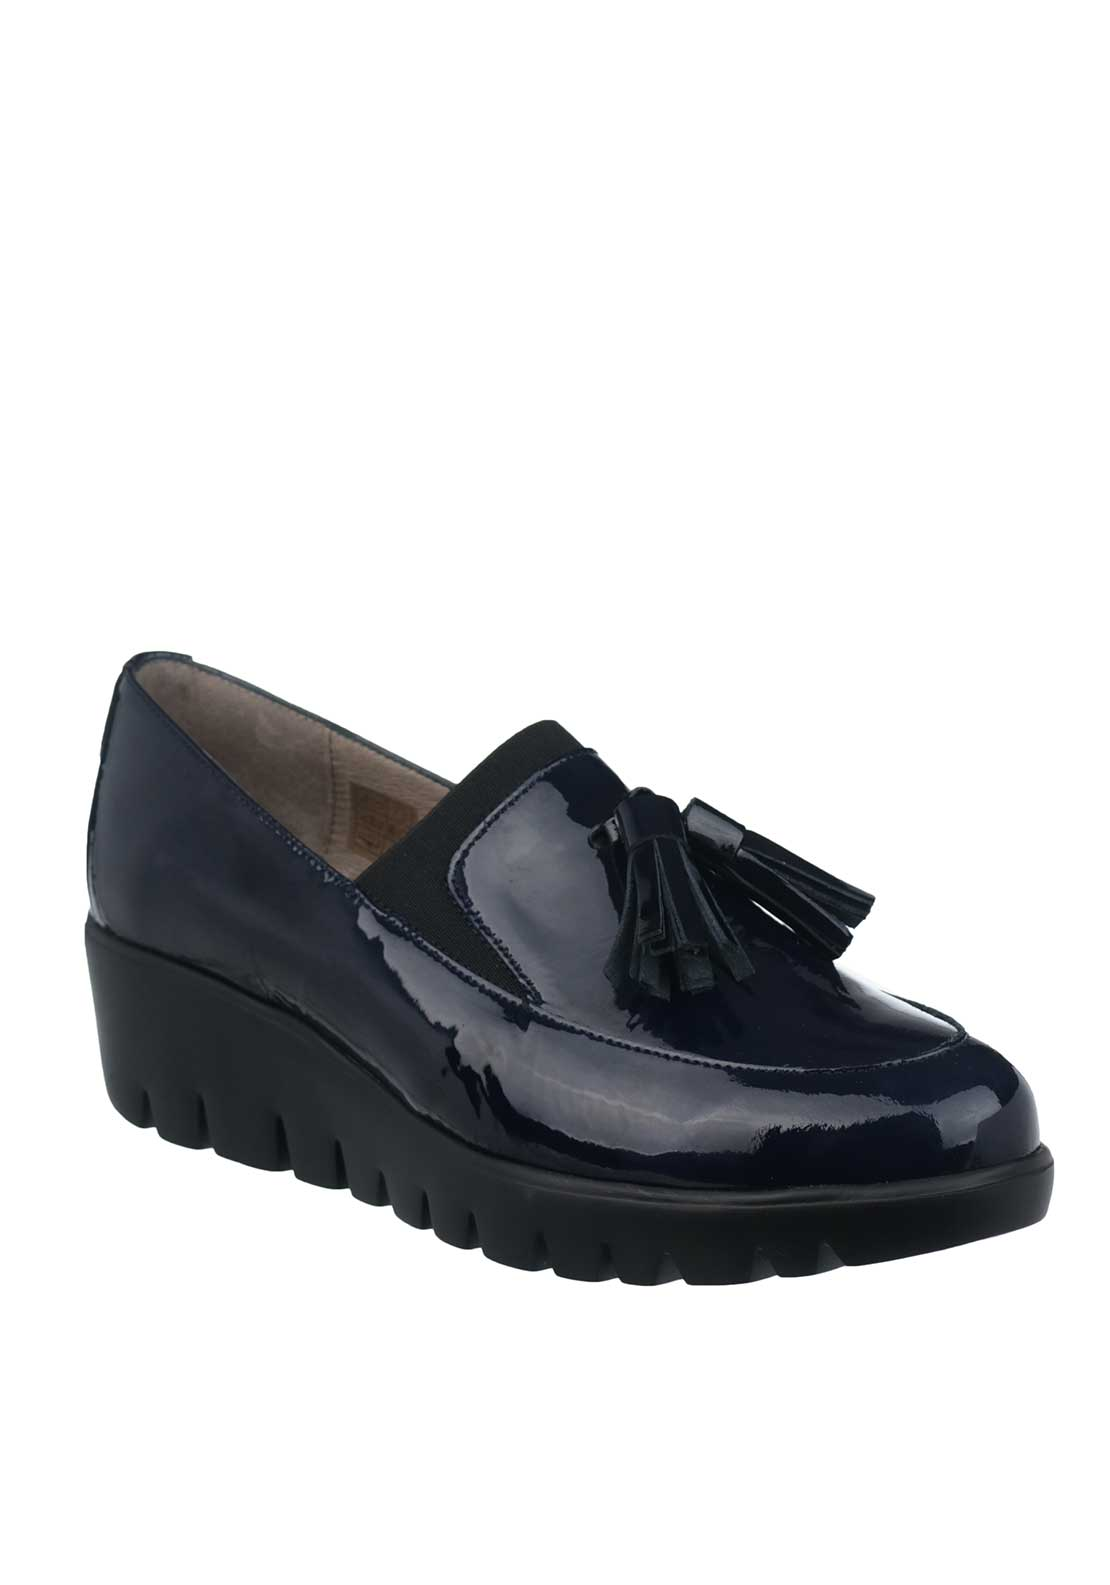 Wonders Fly Patent Leather Wedged Loafers, Navy